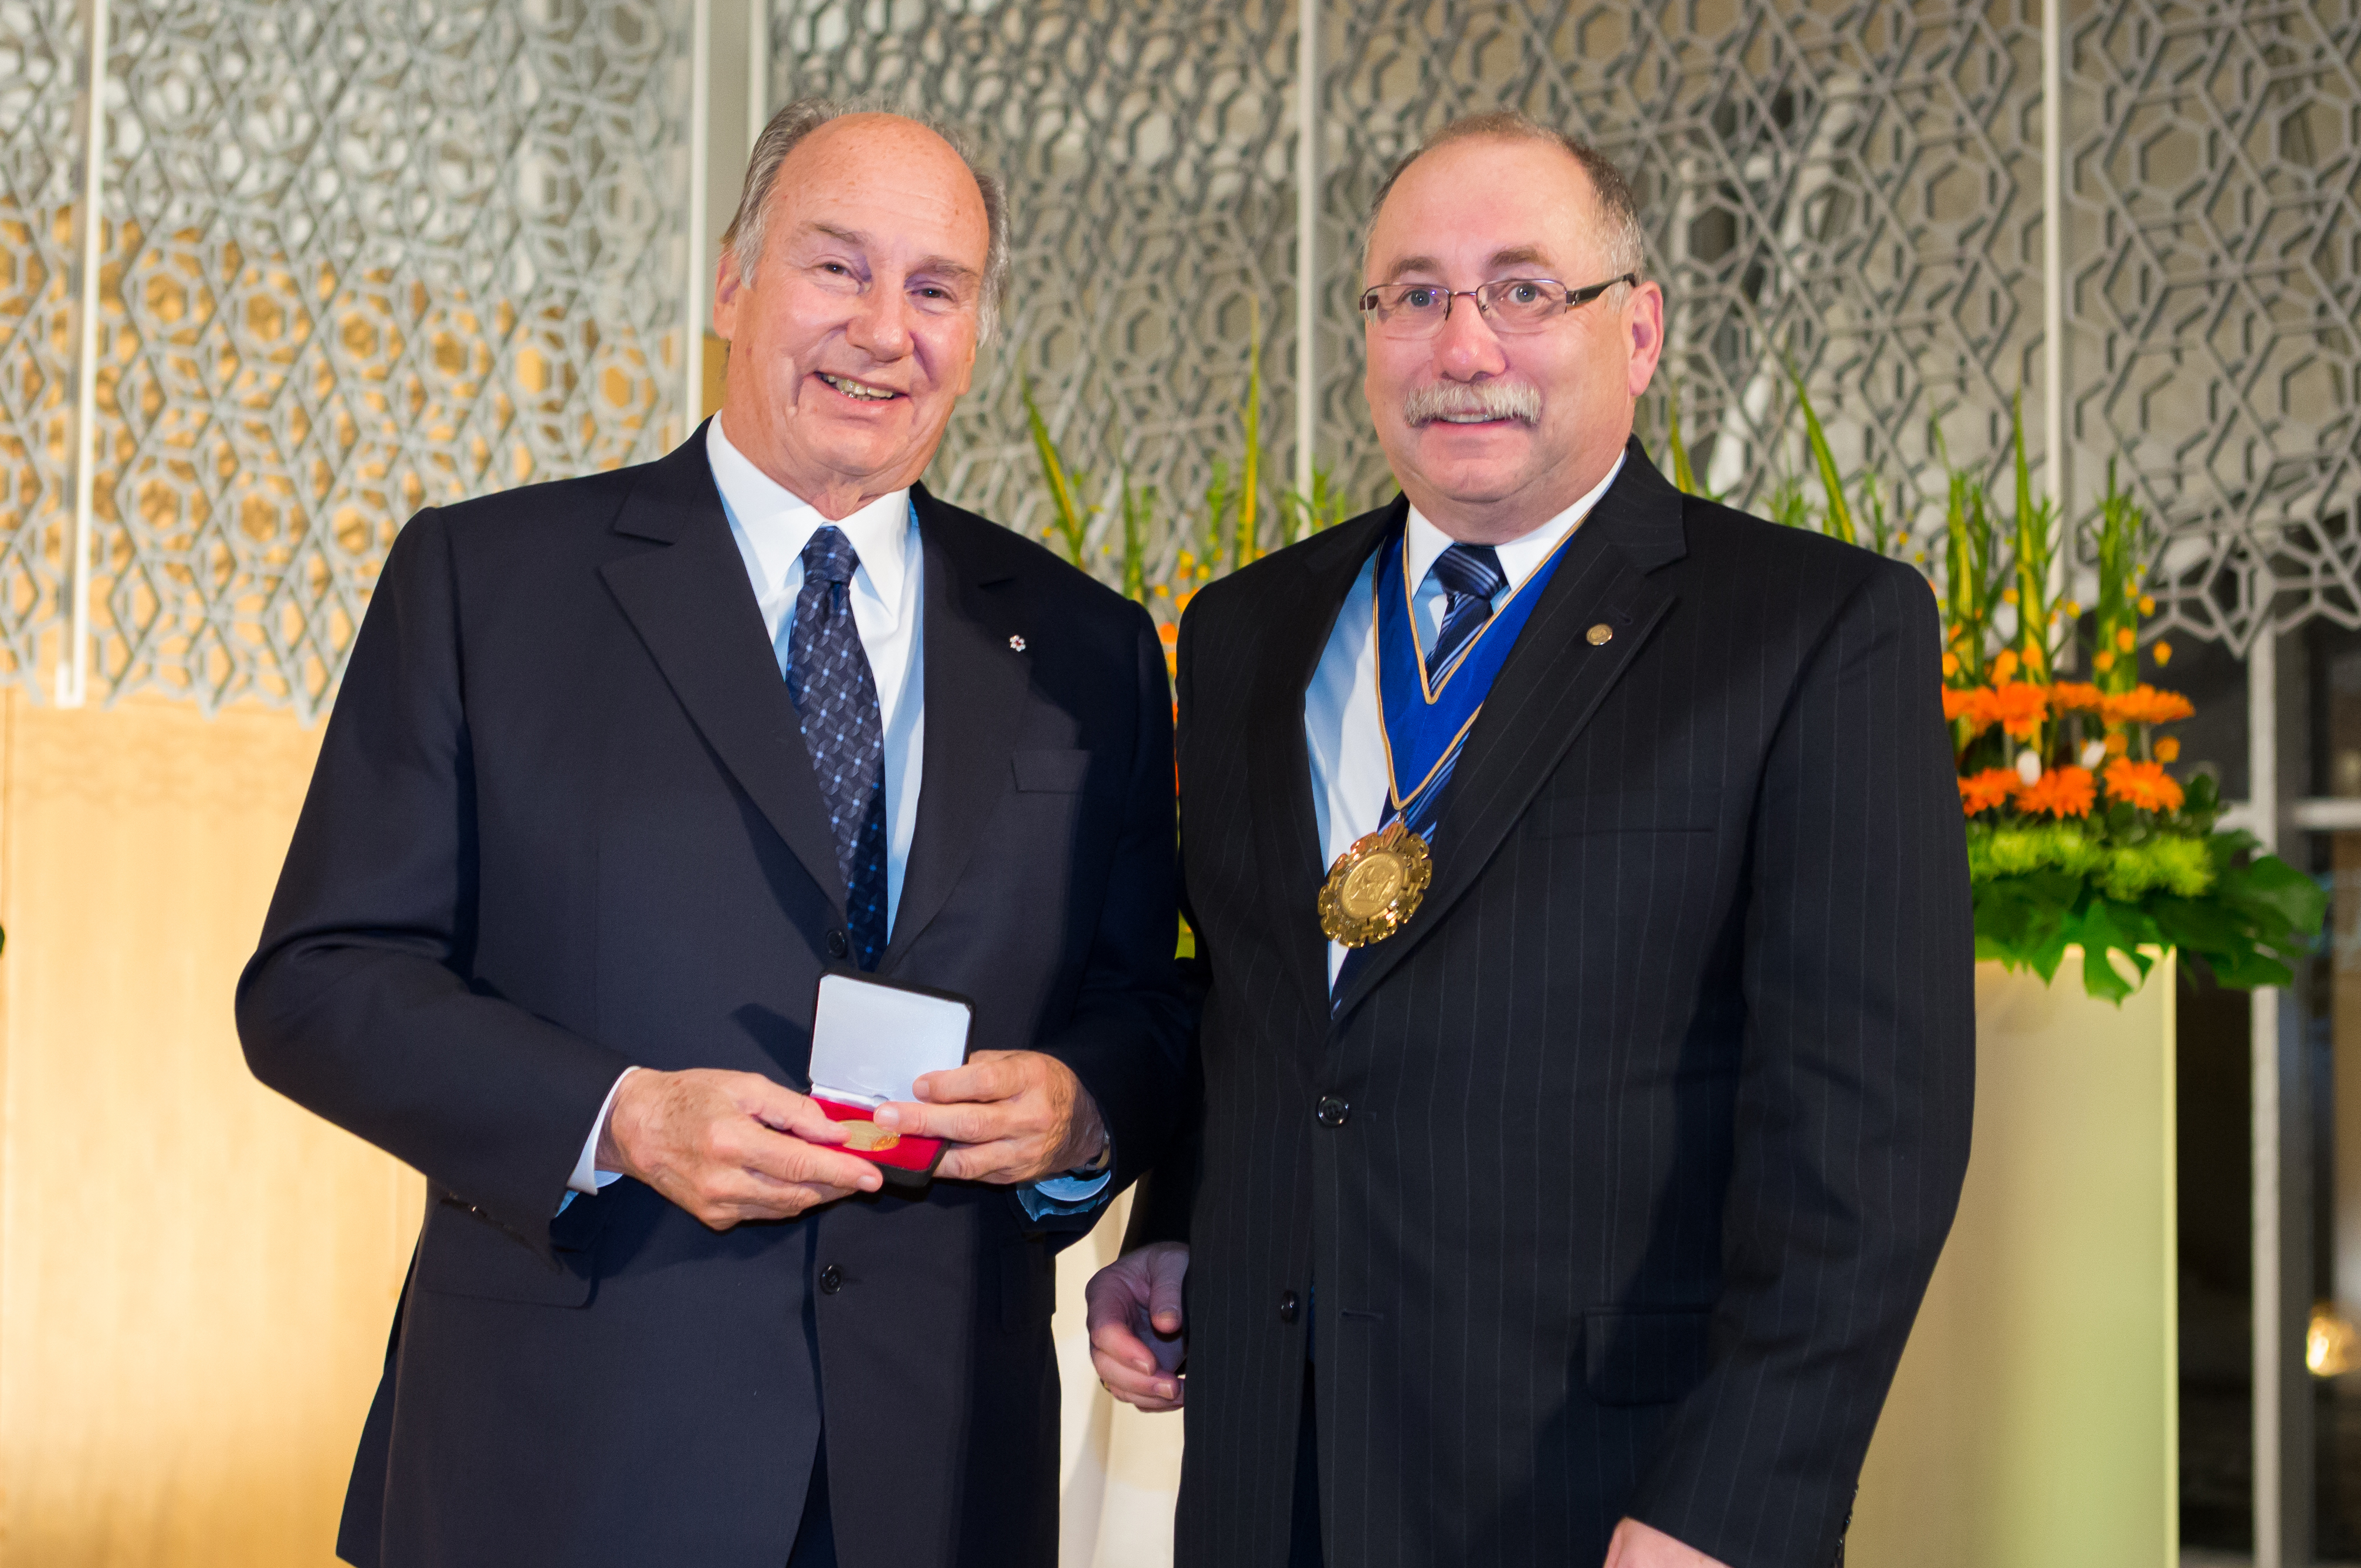 Mawlana Hazar Imam is awarded the 2013 Royal Architectural Institute of Canada Gold Medal by Paul Frank, President of RAIC. Photo: Farhez Rayani